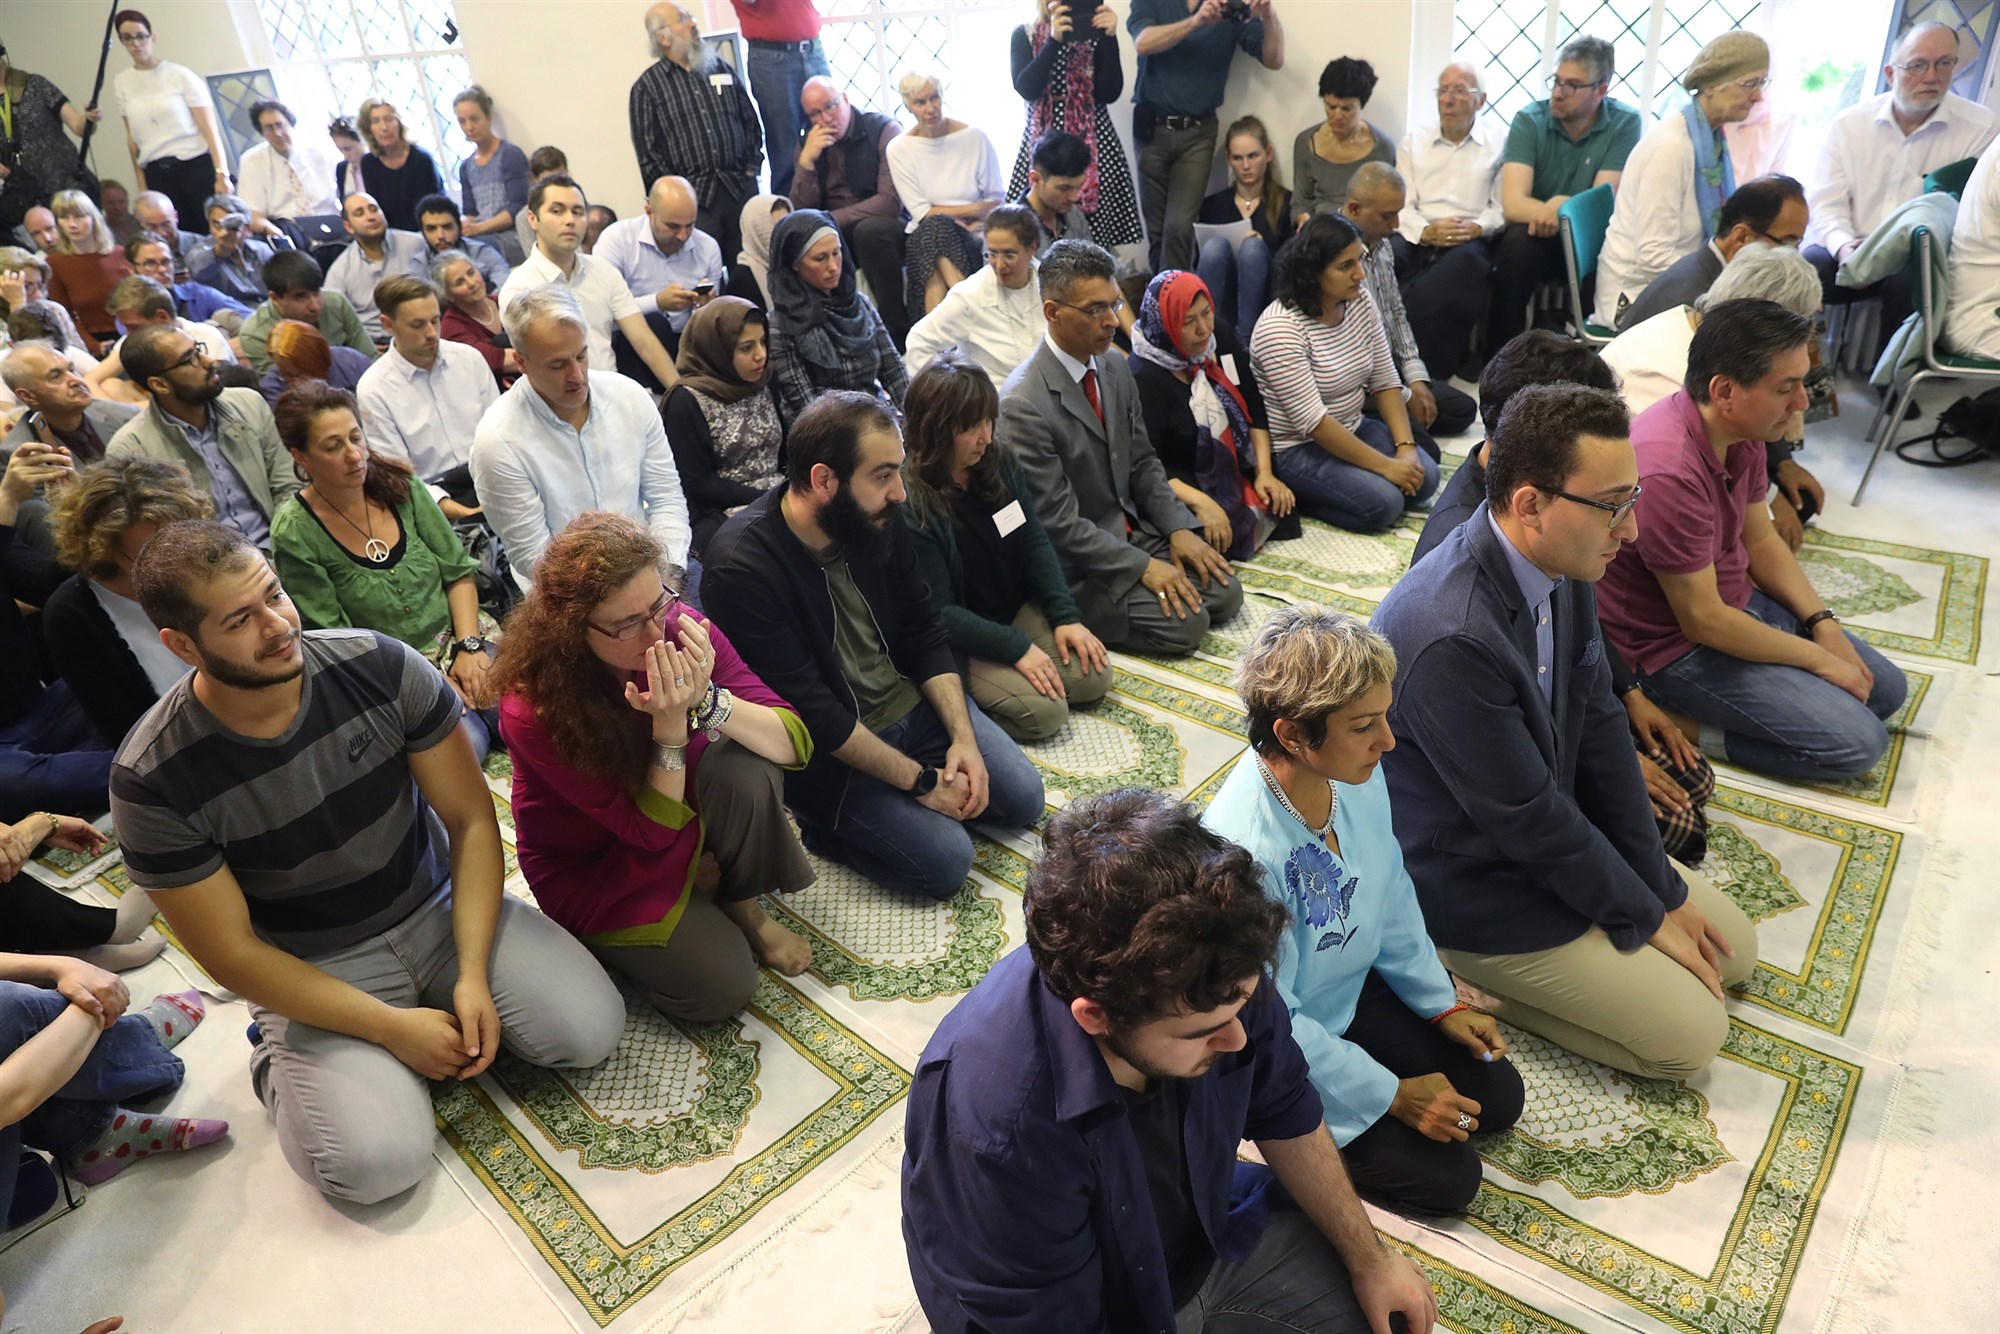 Affirming mosques help gay Muslims reconcile faith, sexuality